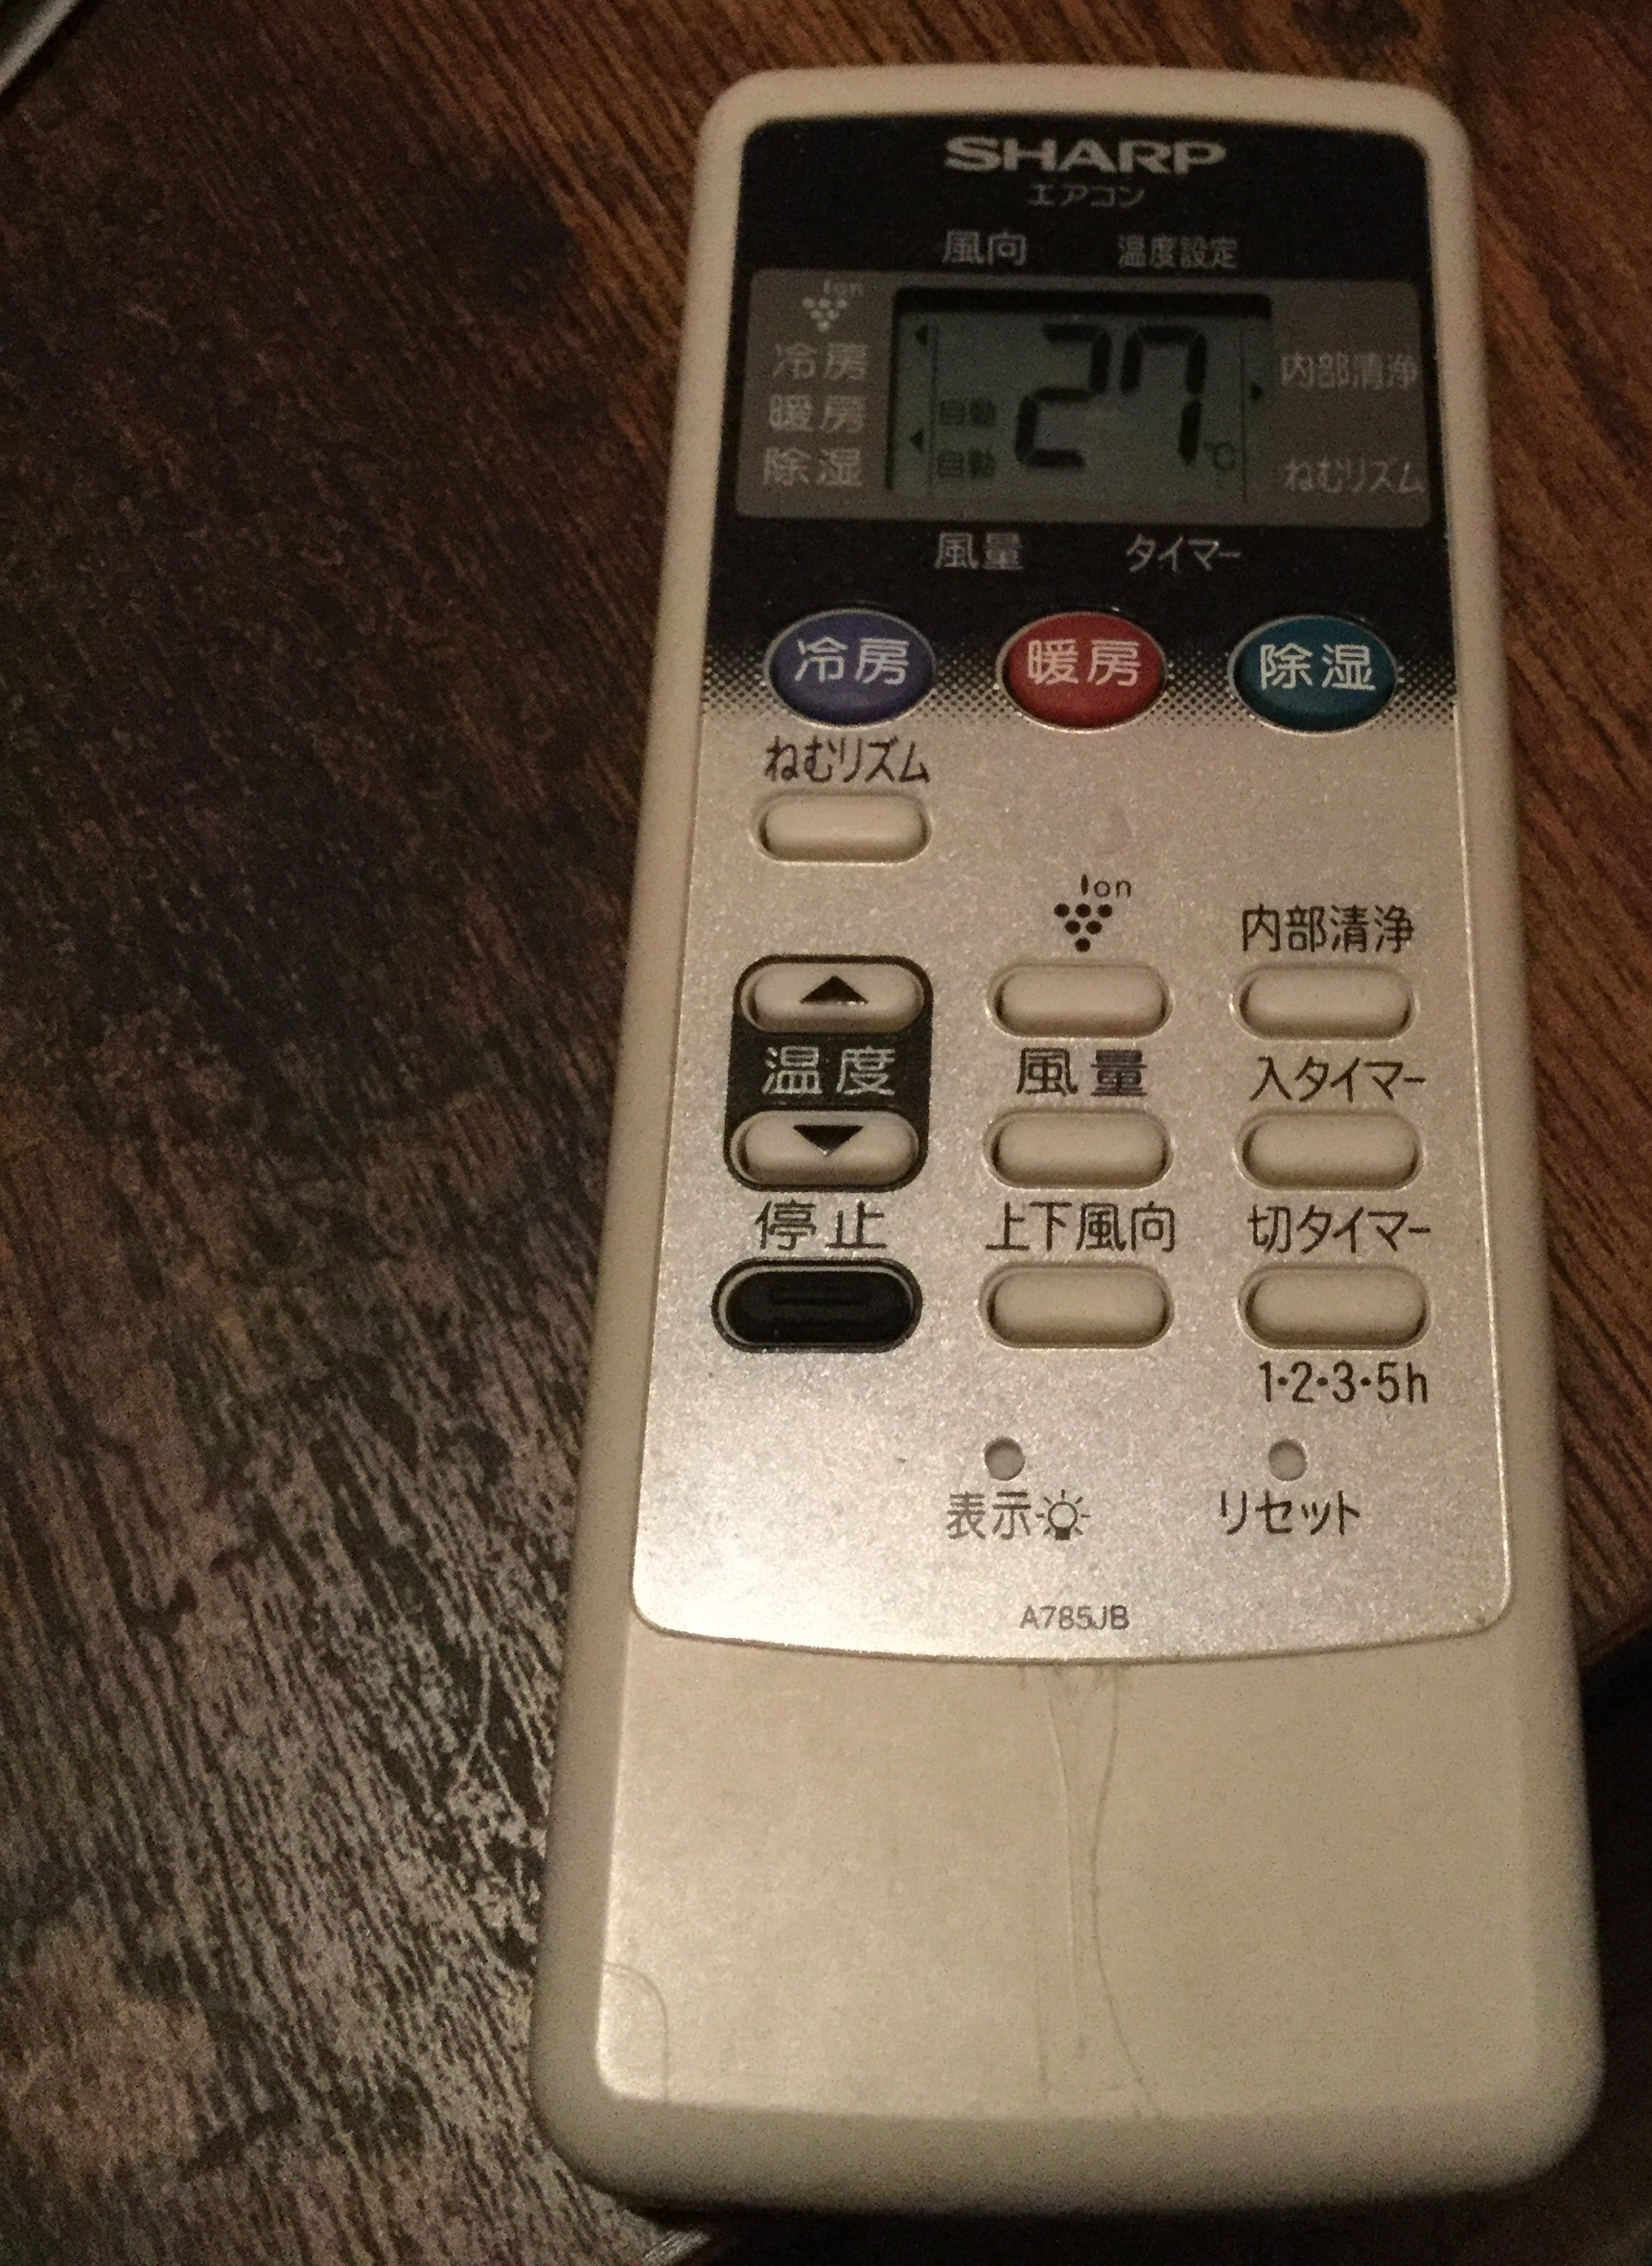 Japanese in real life how to use the aircon remote understand kanji hey thanks heater was perfect last night i decided to turn it off when i woke up biocorpaavc Choice Image